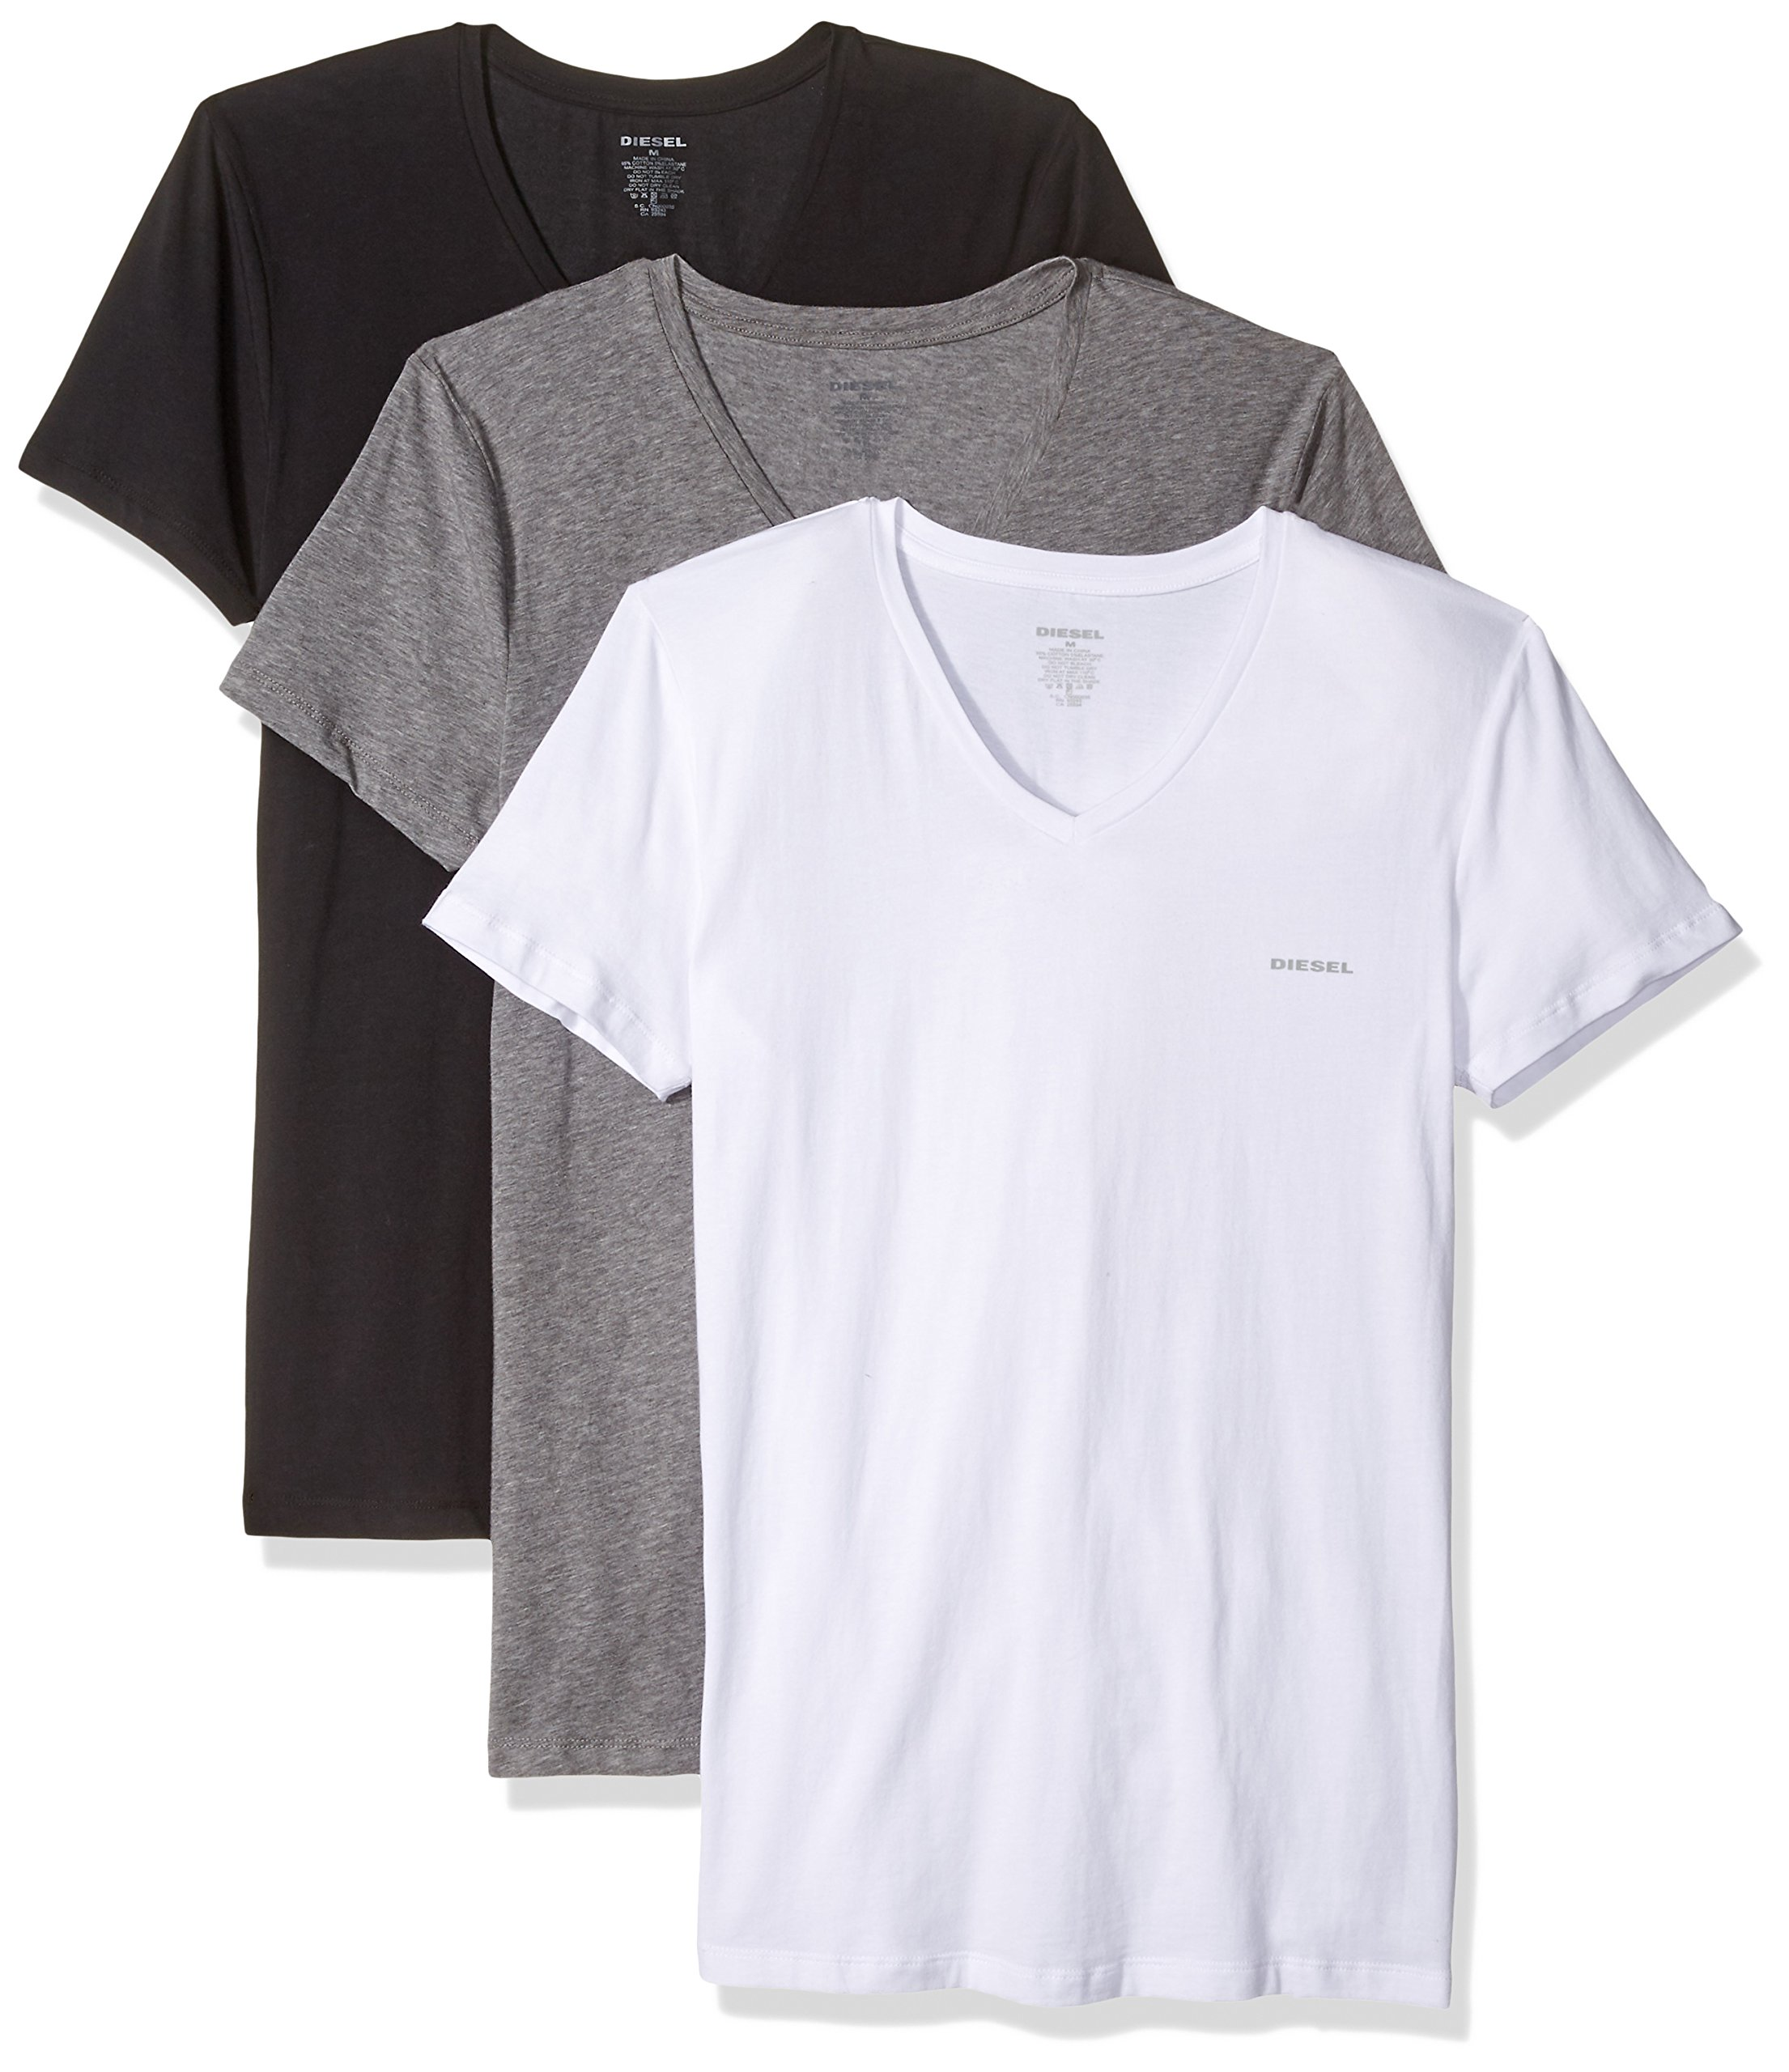 Diesel Men's Umtee-MICHAEL3PACK V-Neck T-Shirt, Black/White/Grey, XXL